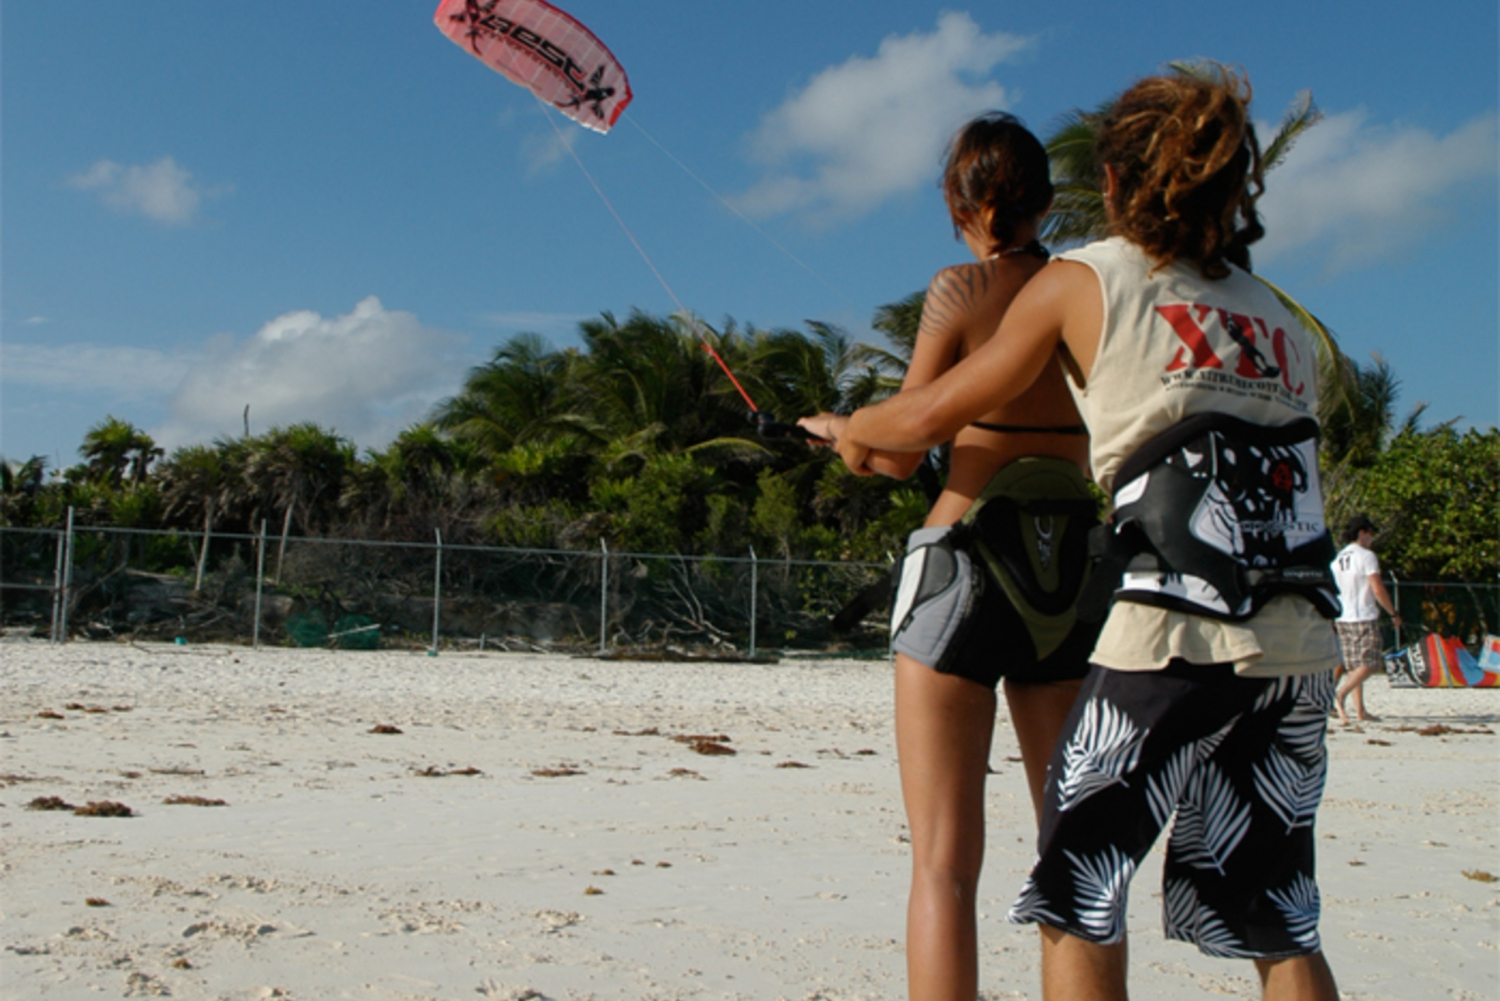 1-Hour Intro Kite Boarding Lesson in Tulum Mexico